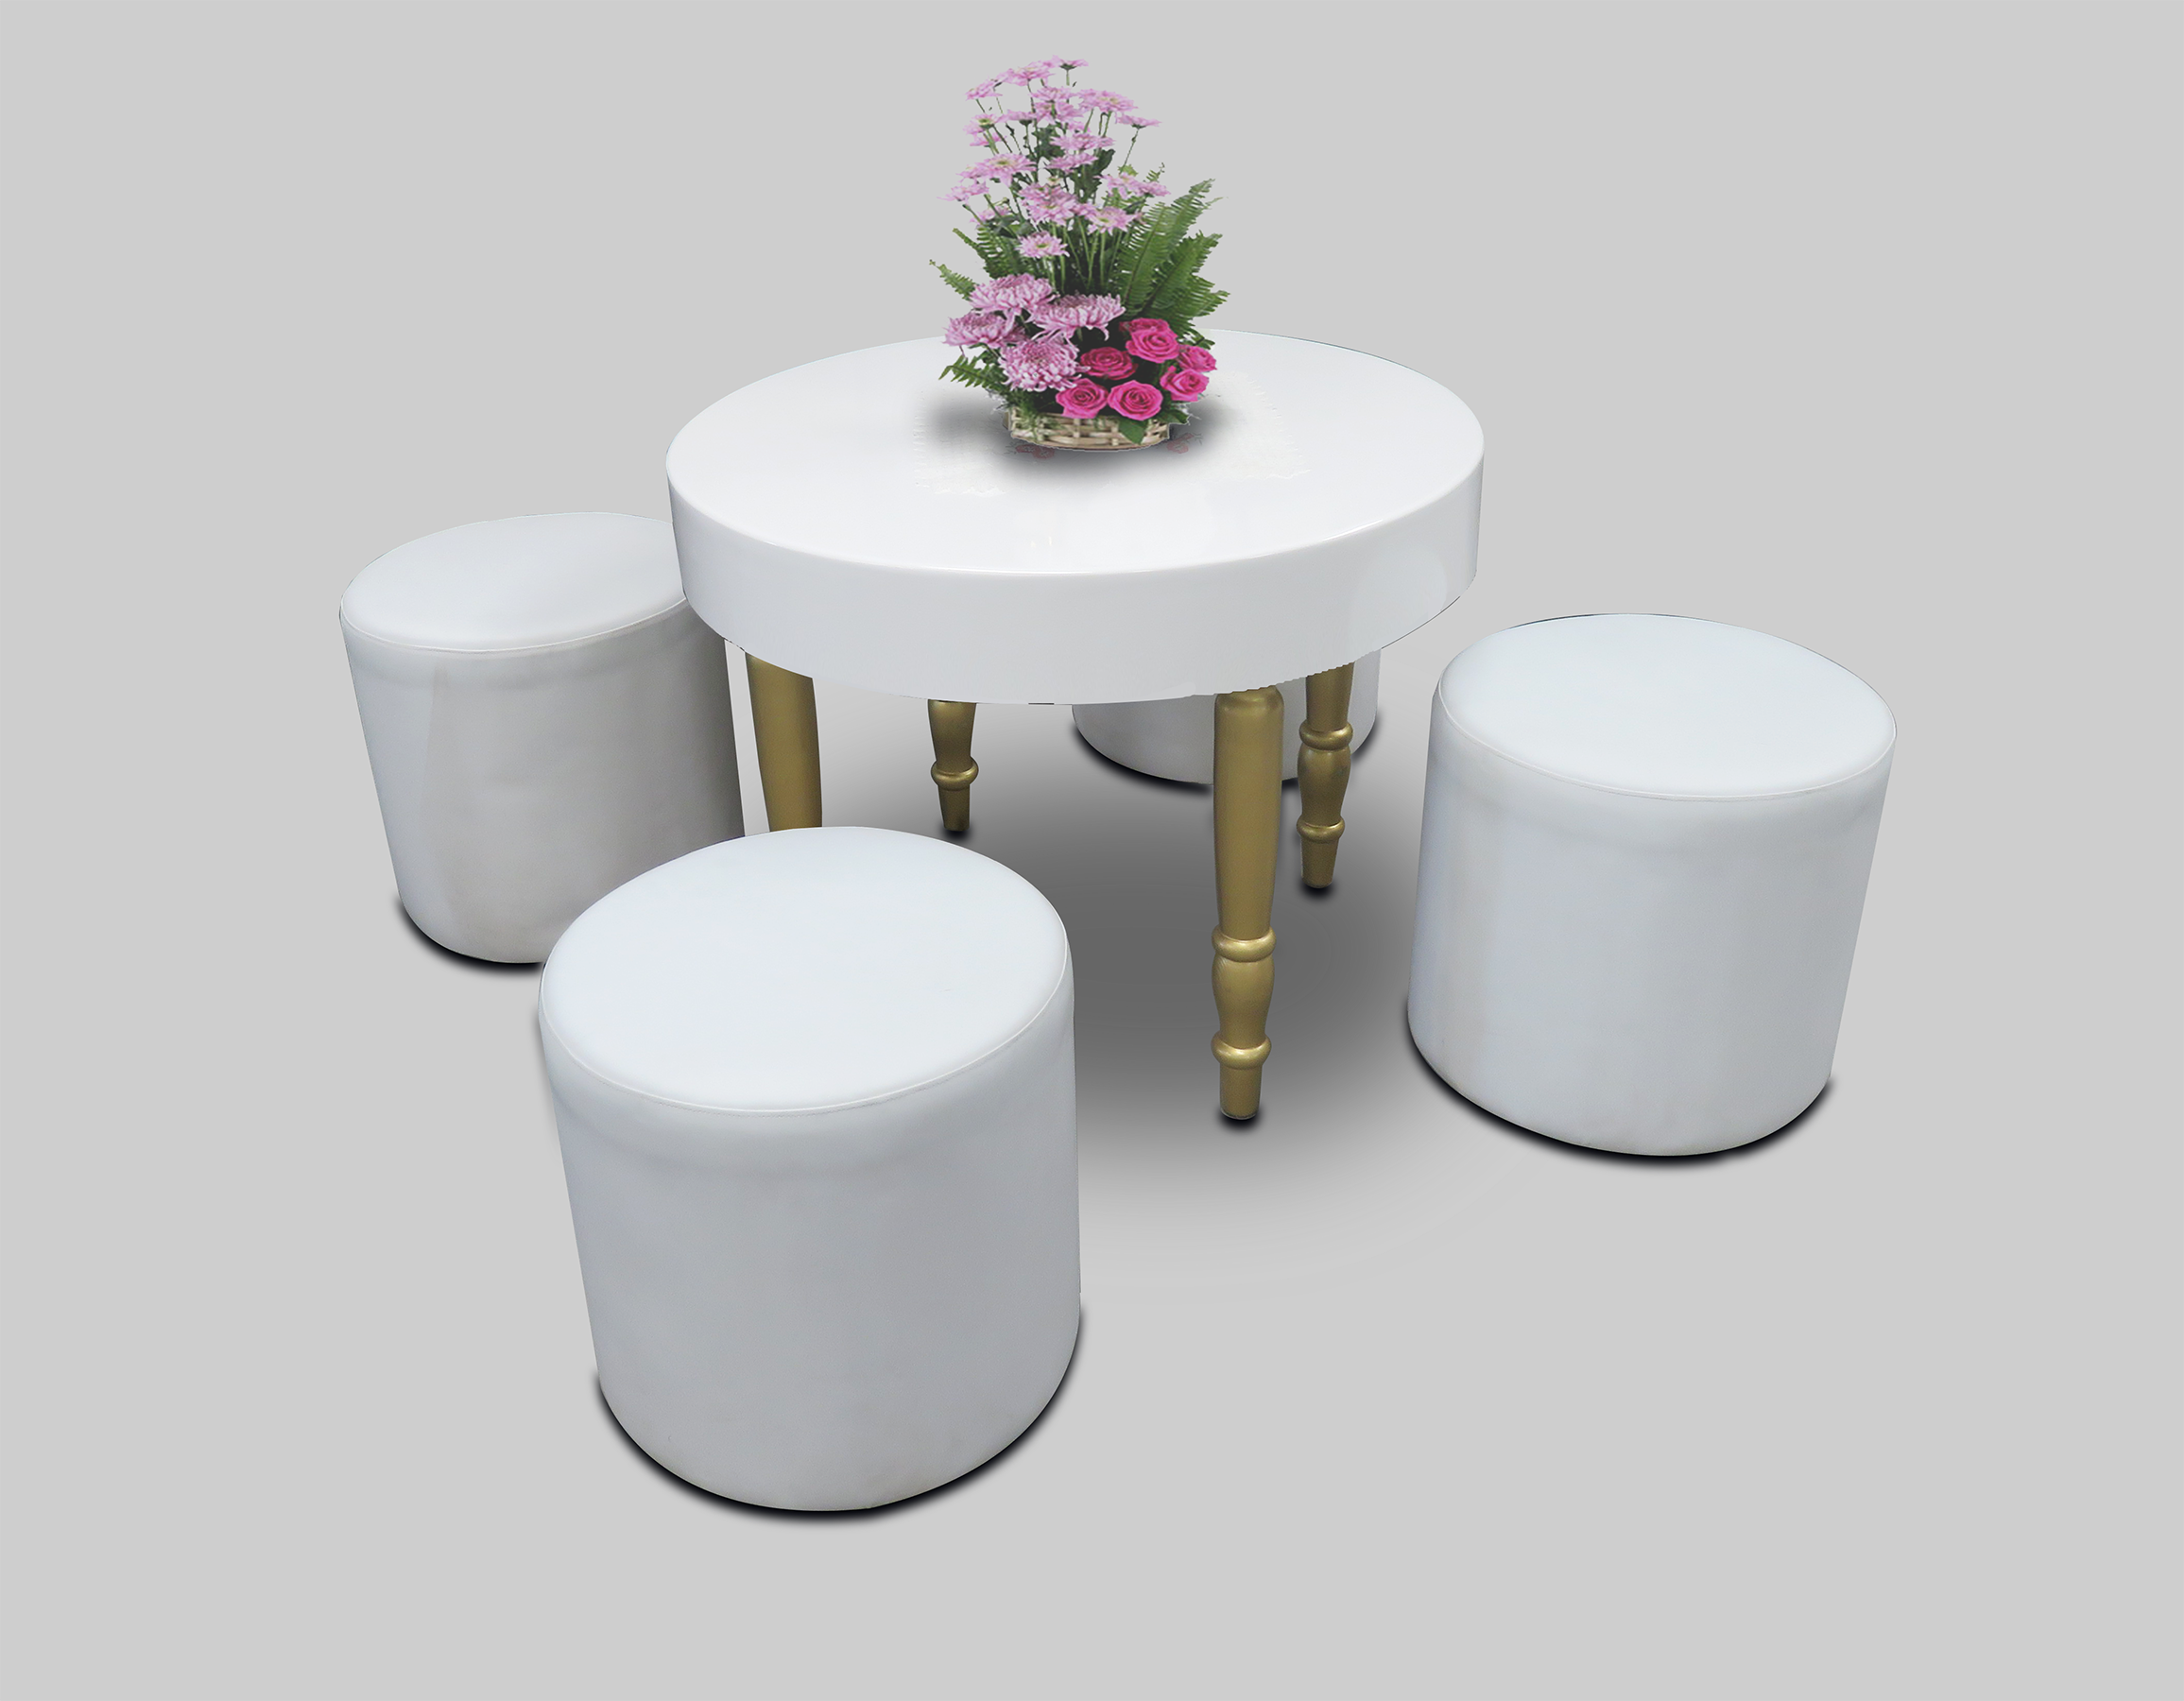 round white dining table. Avalon Round White Dining Table Setup With Roma Pouffes 1 300x234 - S